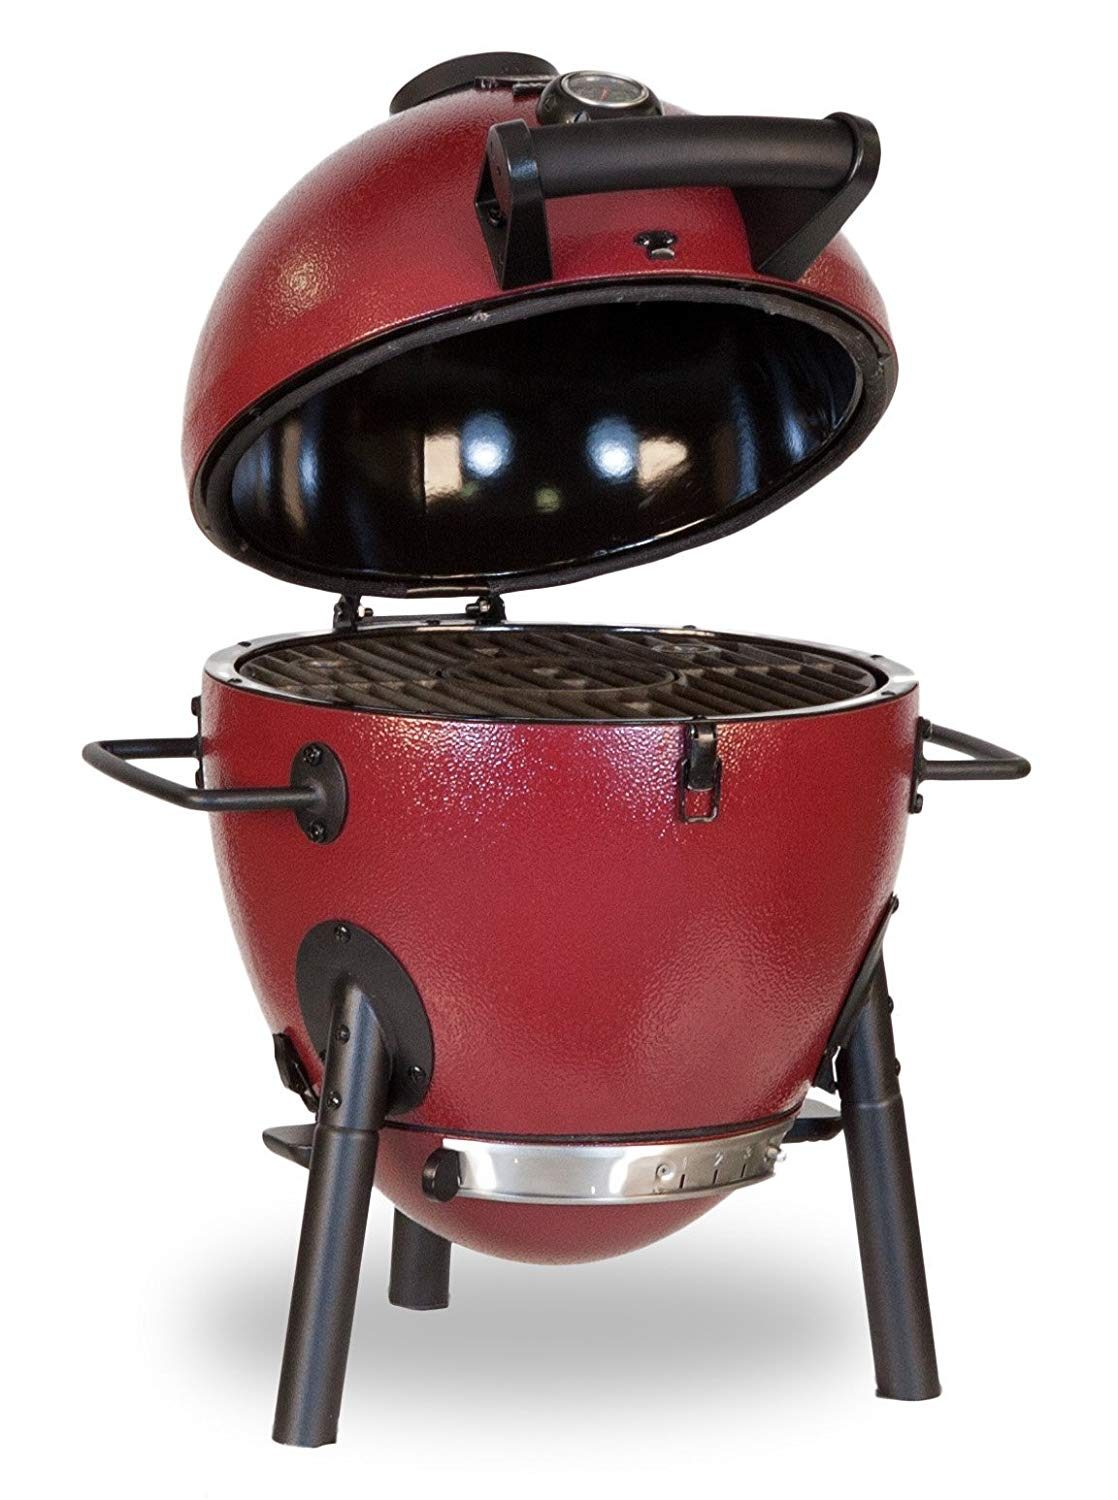 How to Choose a Charcoal Grill: Overall Durability